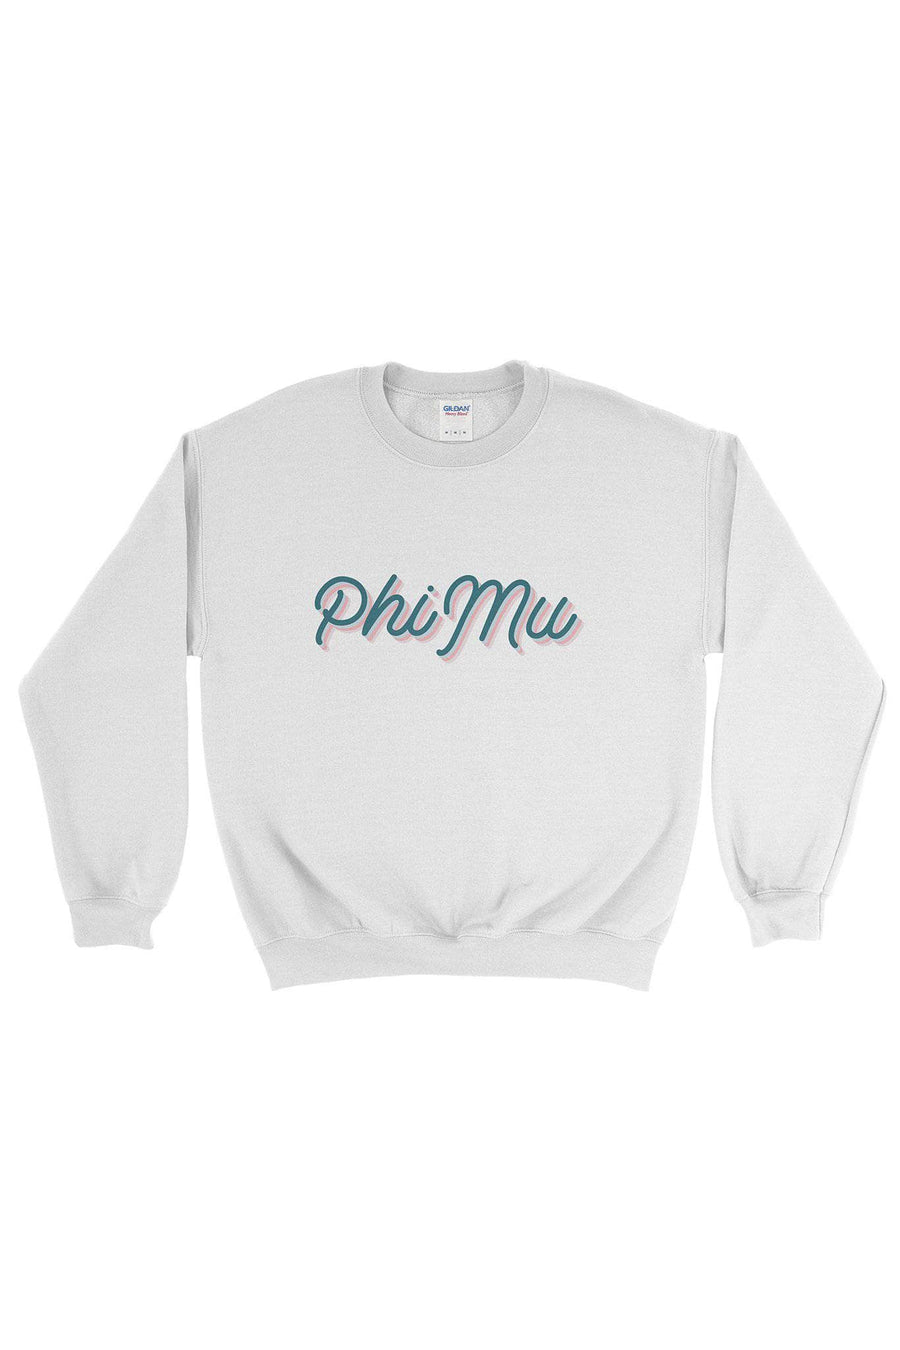 Retro Air Stream Sweatshirt - Gildan Crewneck